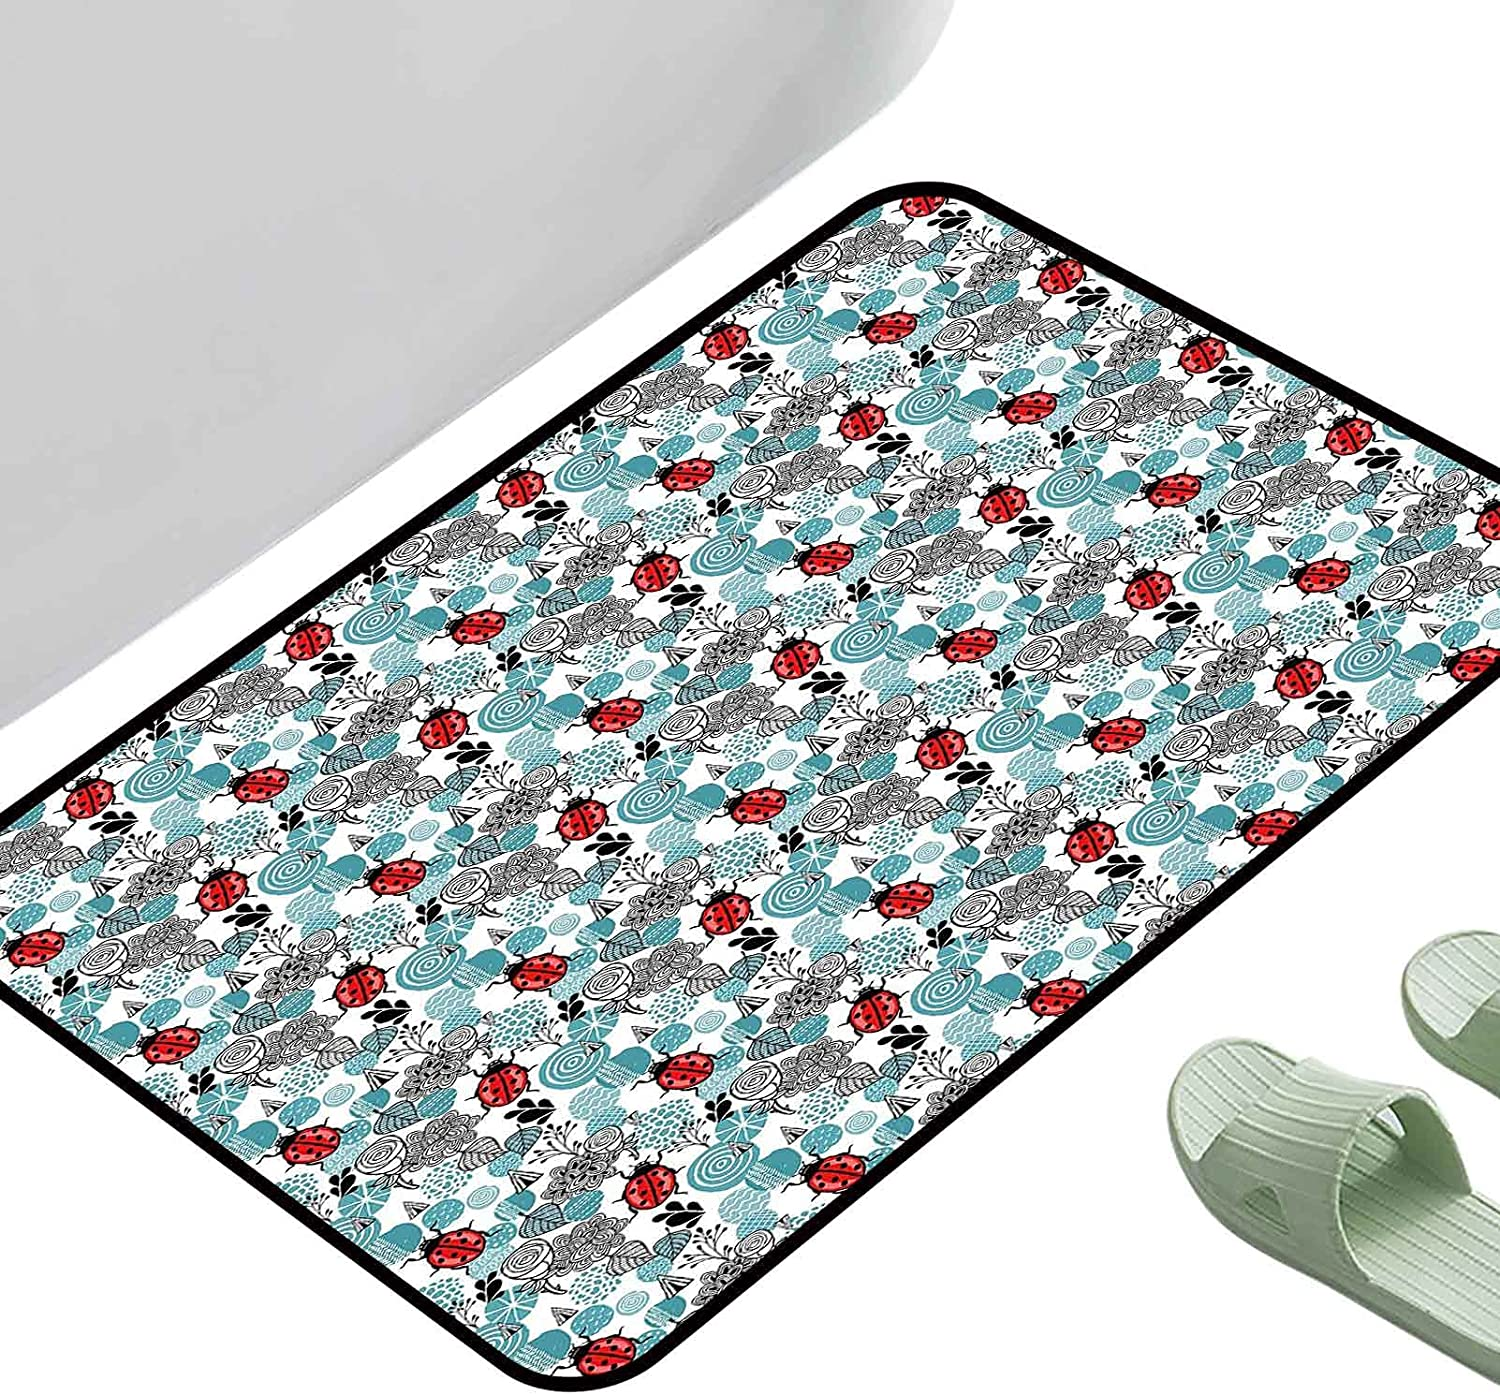 Kitchen Doormat Ladybugs Romantic Elements Flowers Roses Ab All items in the Elegant store Bugs